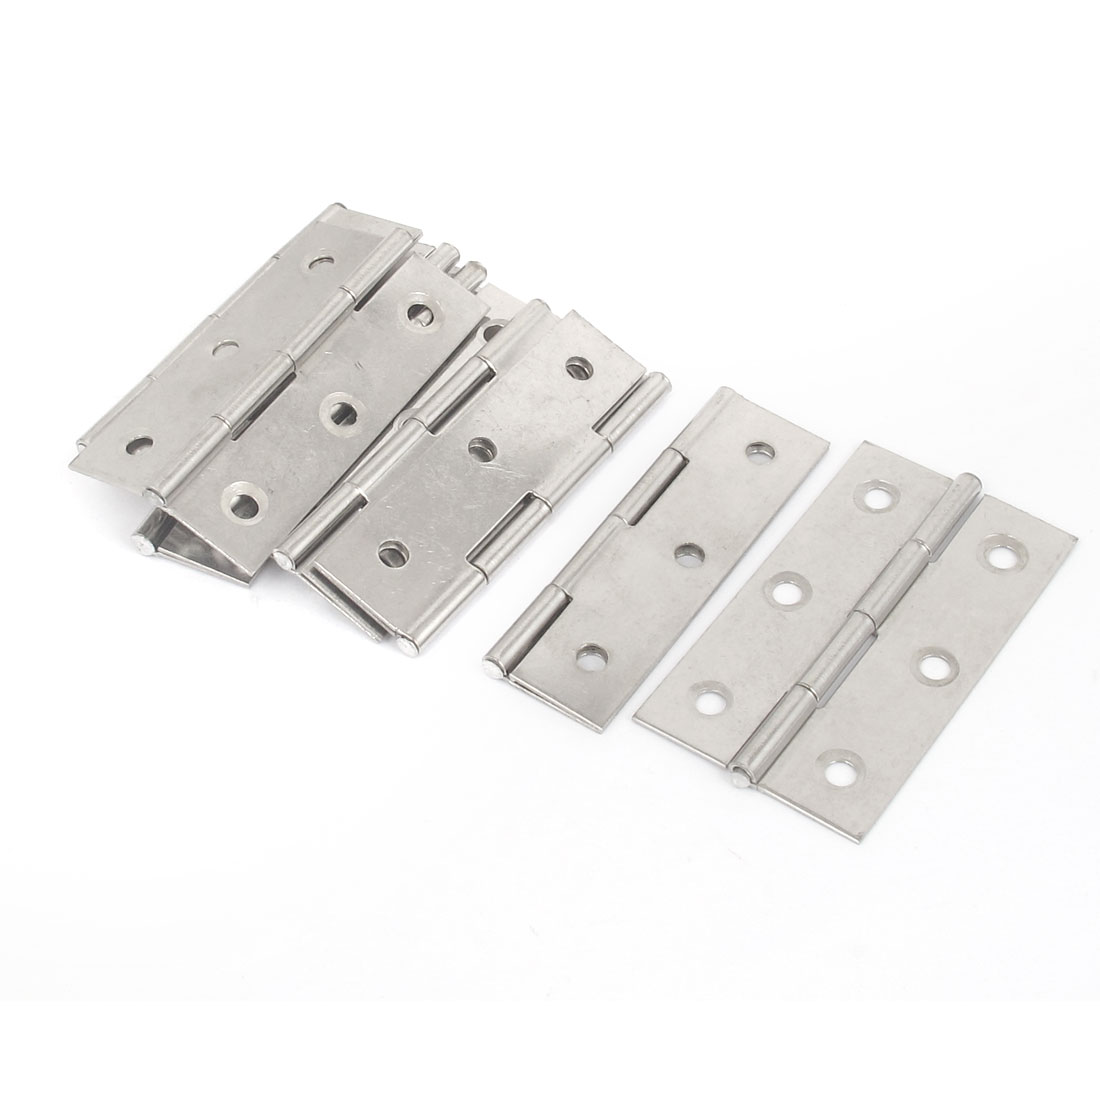 "Home Office Metal Rectangle Interior Window Door Cabinet Hinges Hardware 3"" Long 10pcs"